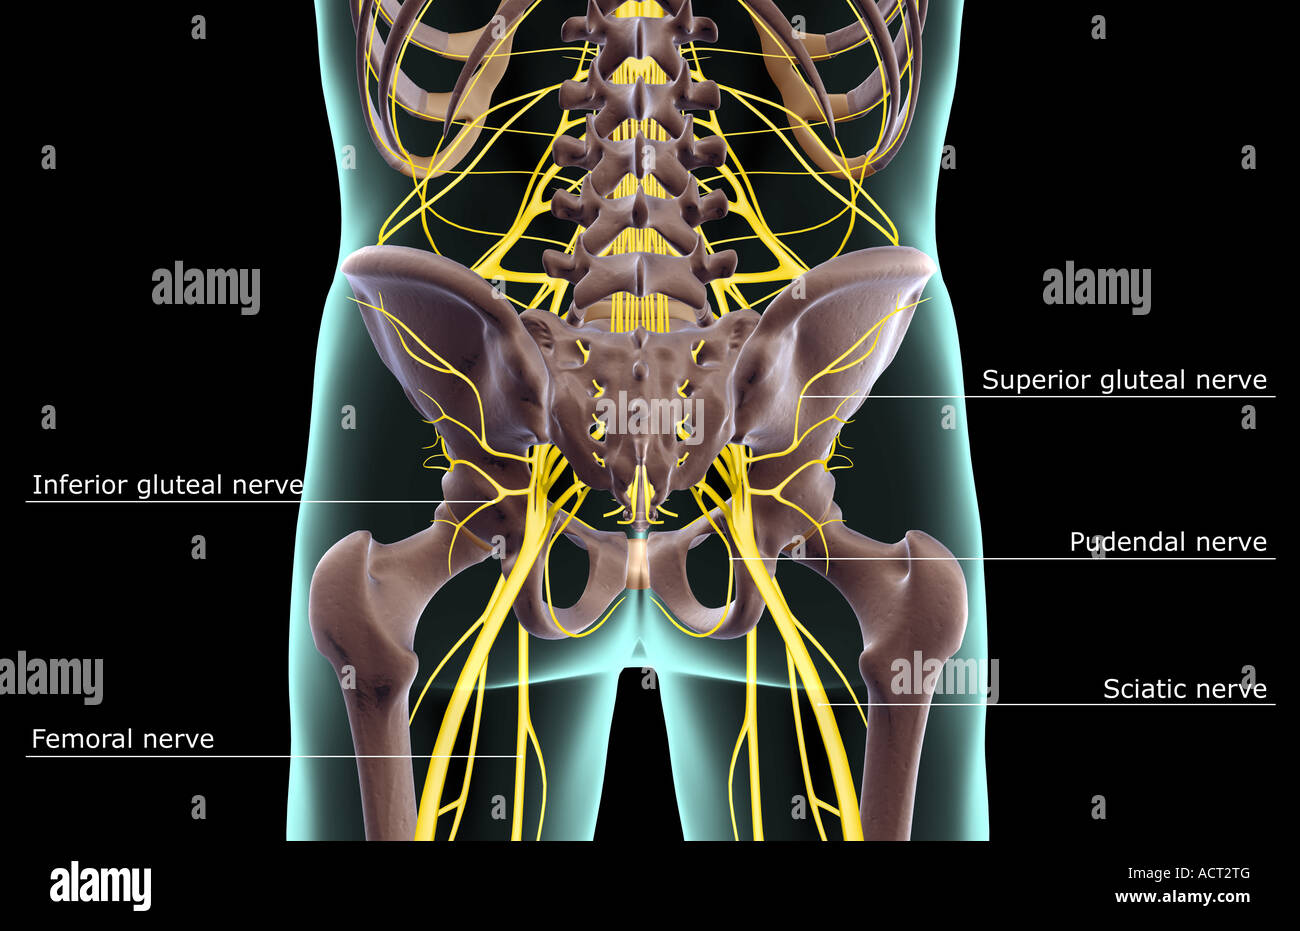 The nerves of the lower body Stock Photo: 13222335 - Alamy